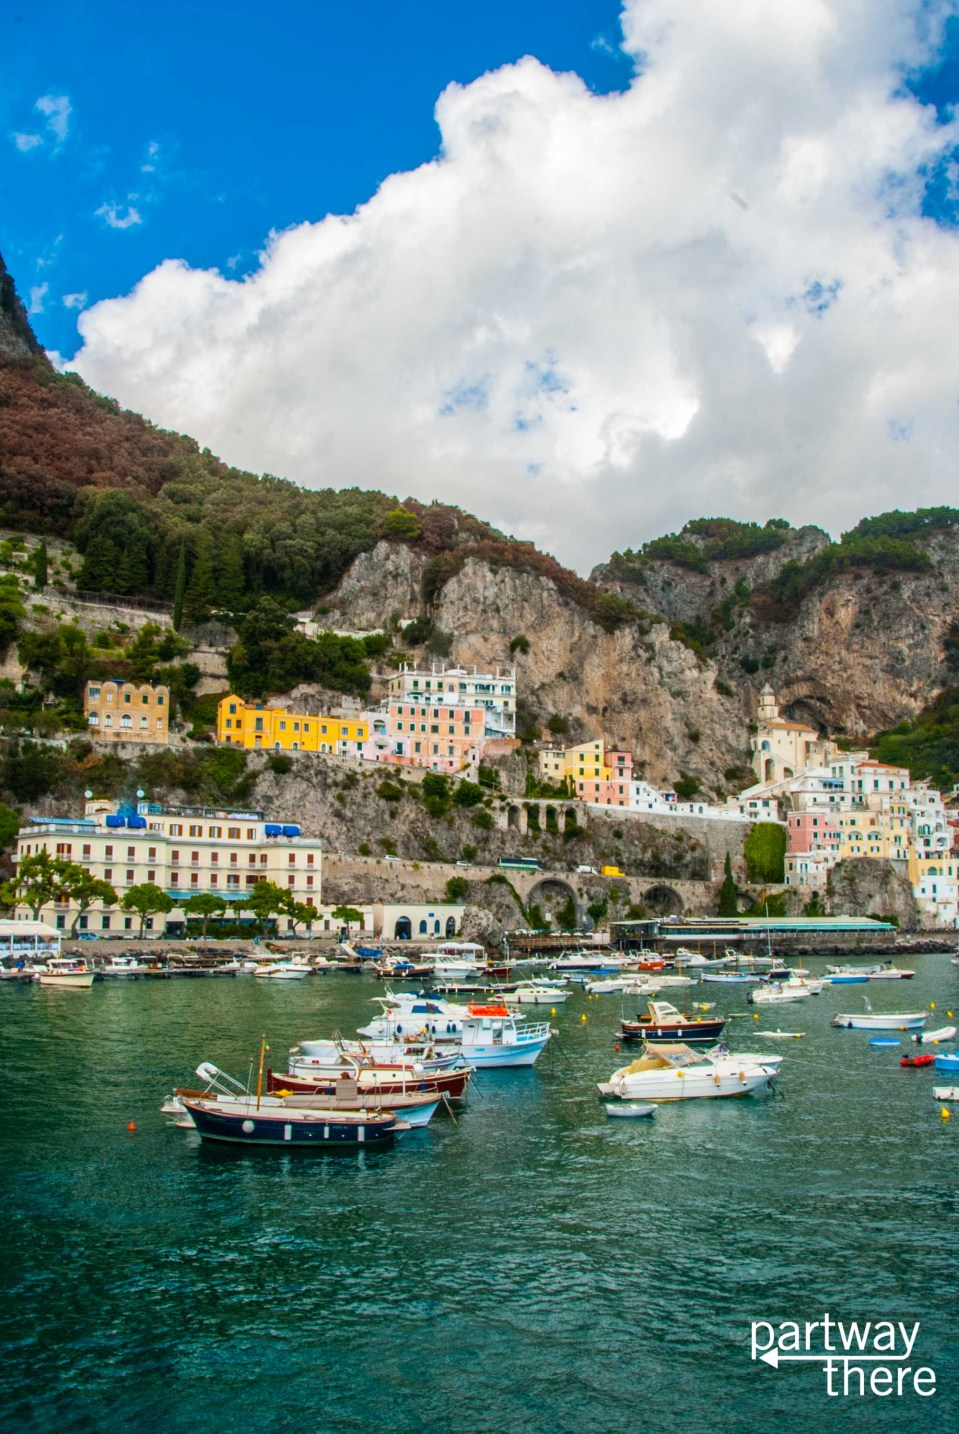 Photo of the town of Amalfi on the Amalfi Coast in Italy